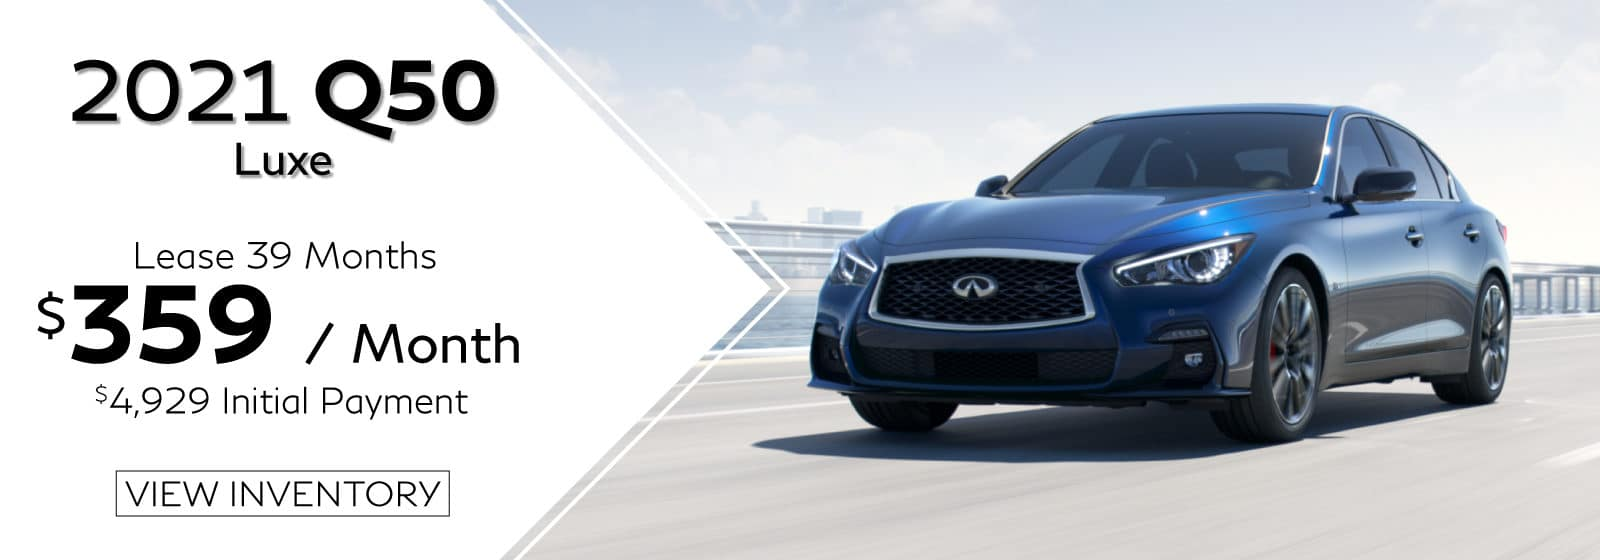 2021 Q50 Luxe Lease $359 a month for 39 months. View Inventory.